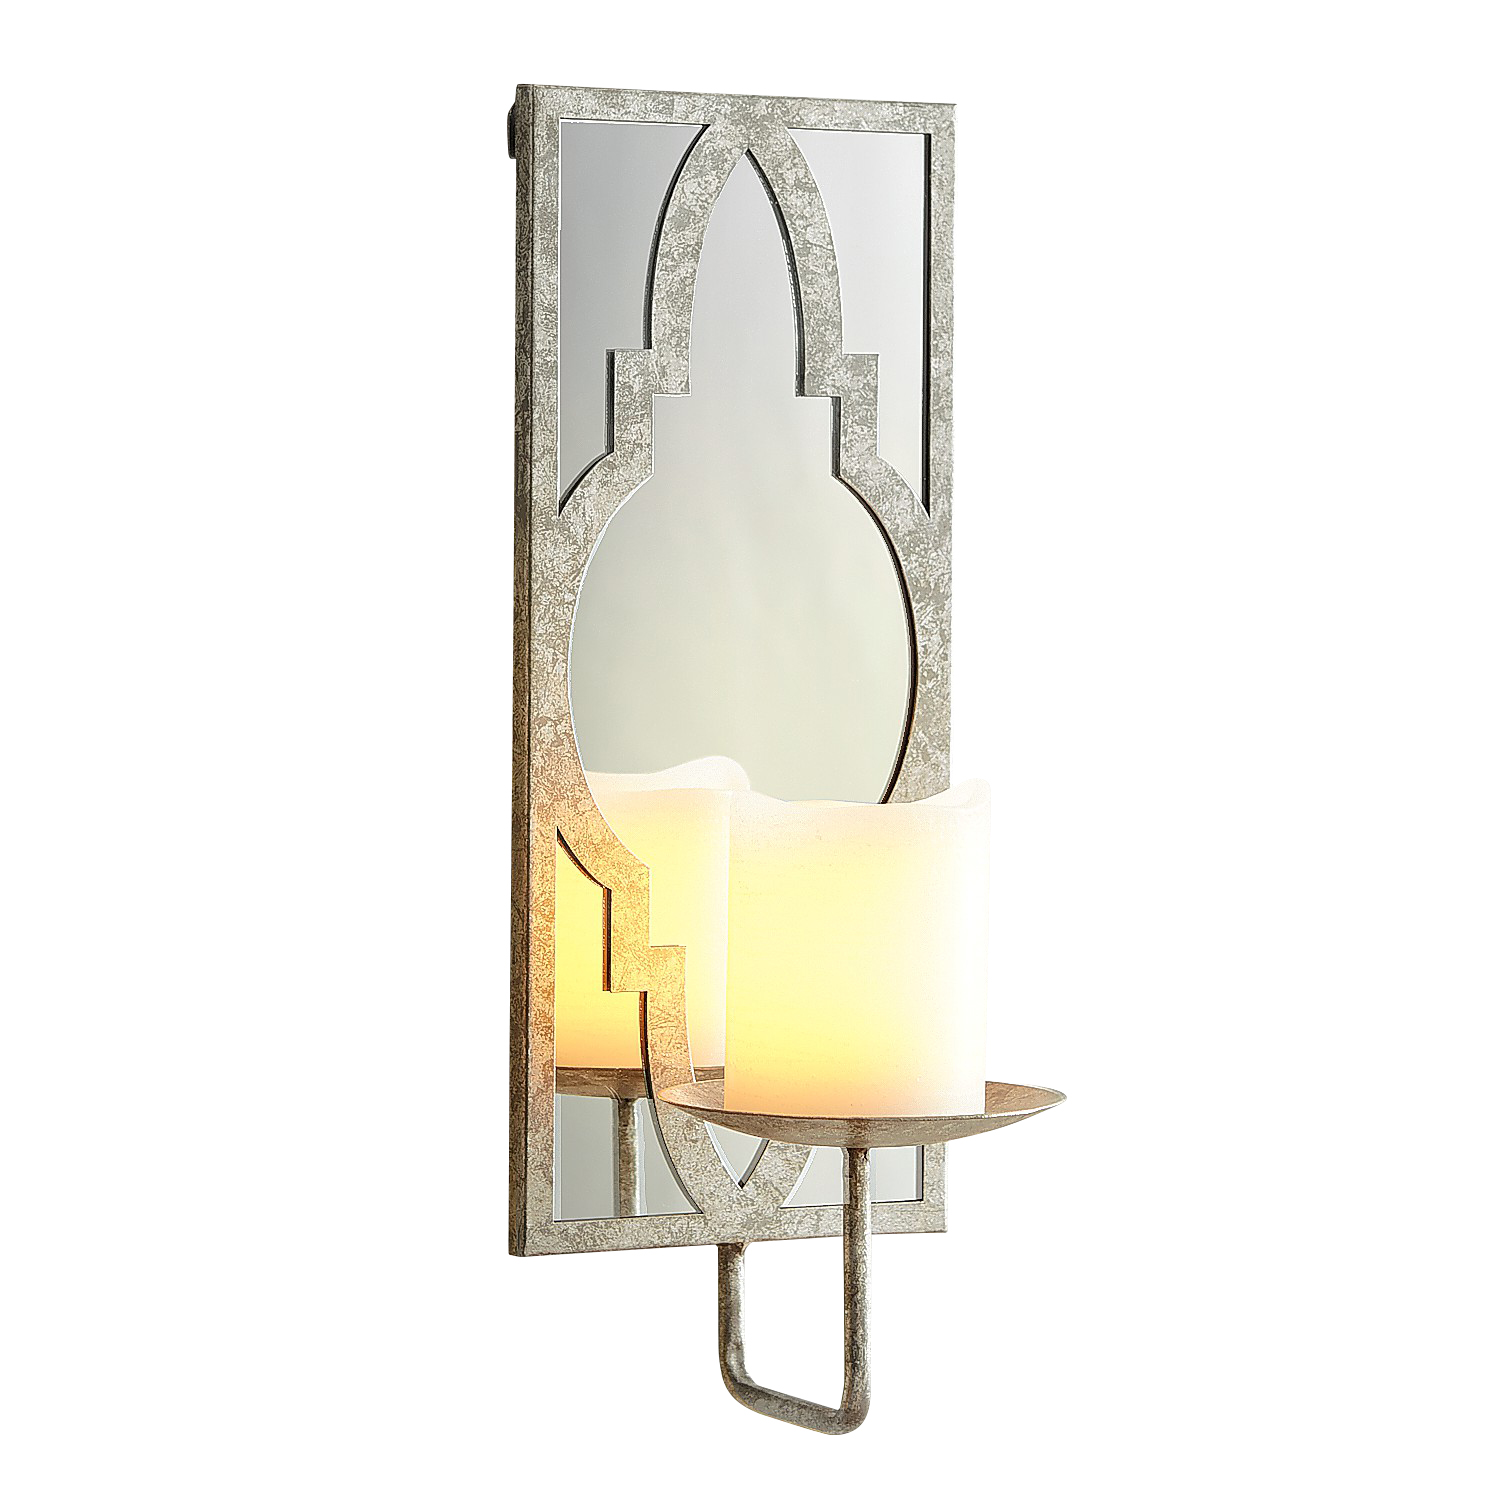 Silver Mirrored Candle Holder Wall Sconce - Pier1 Imports on Silver Wall Sconces For Candles id=63756